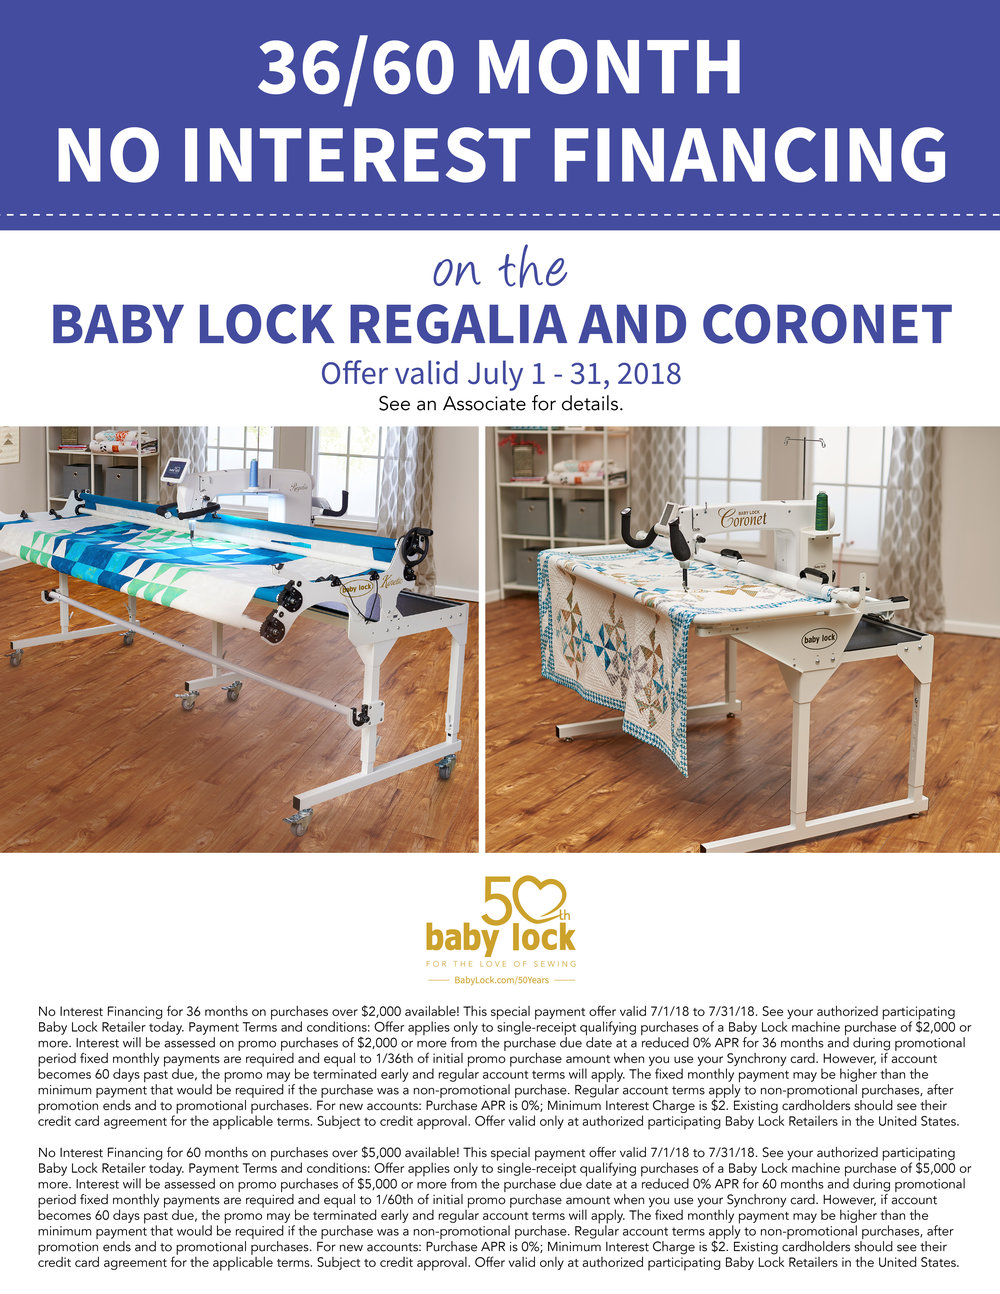 NO INTEREST FINANCING ON THE CORONET - Get your quilts finished in a jiffy with the Baby Lock Coronet! This month, you may qualify for No-Interest Financing. See store for details.